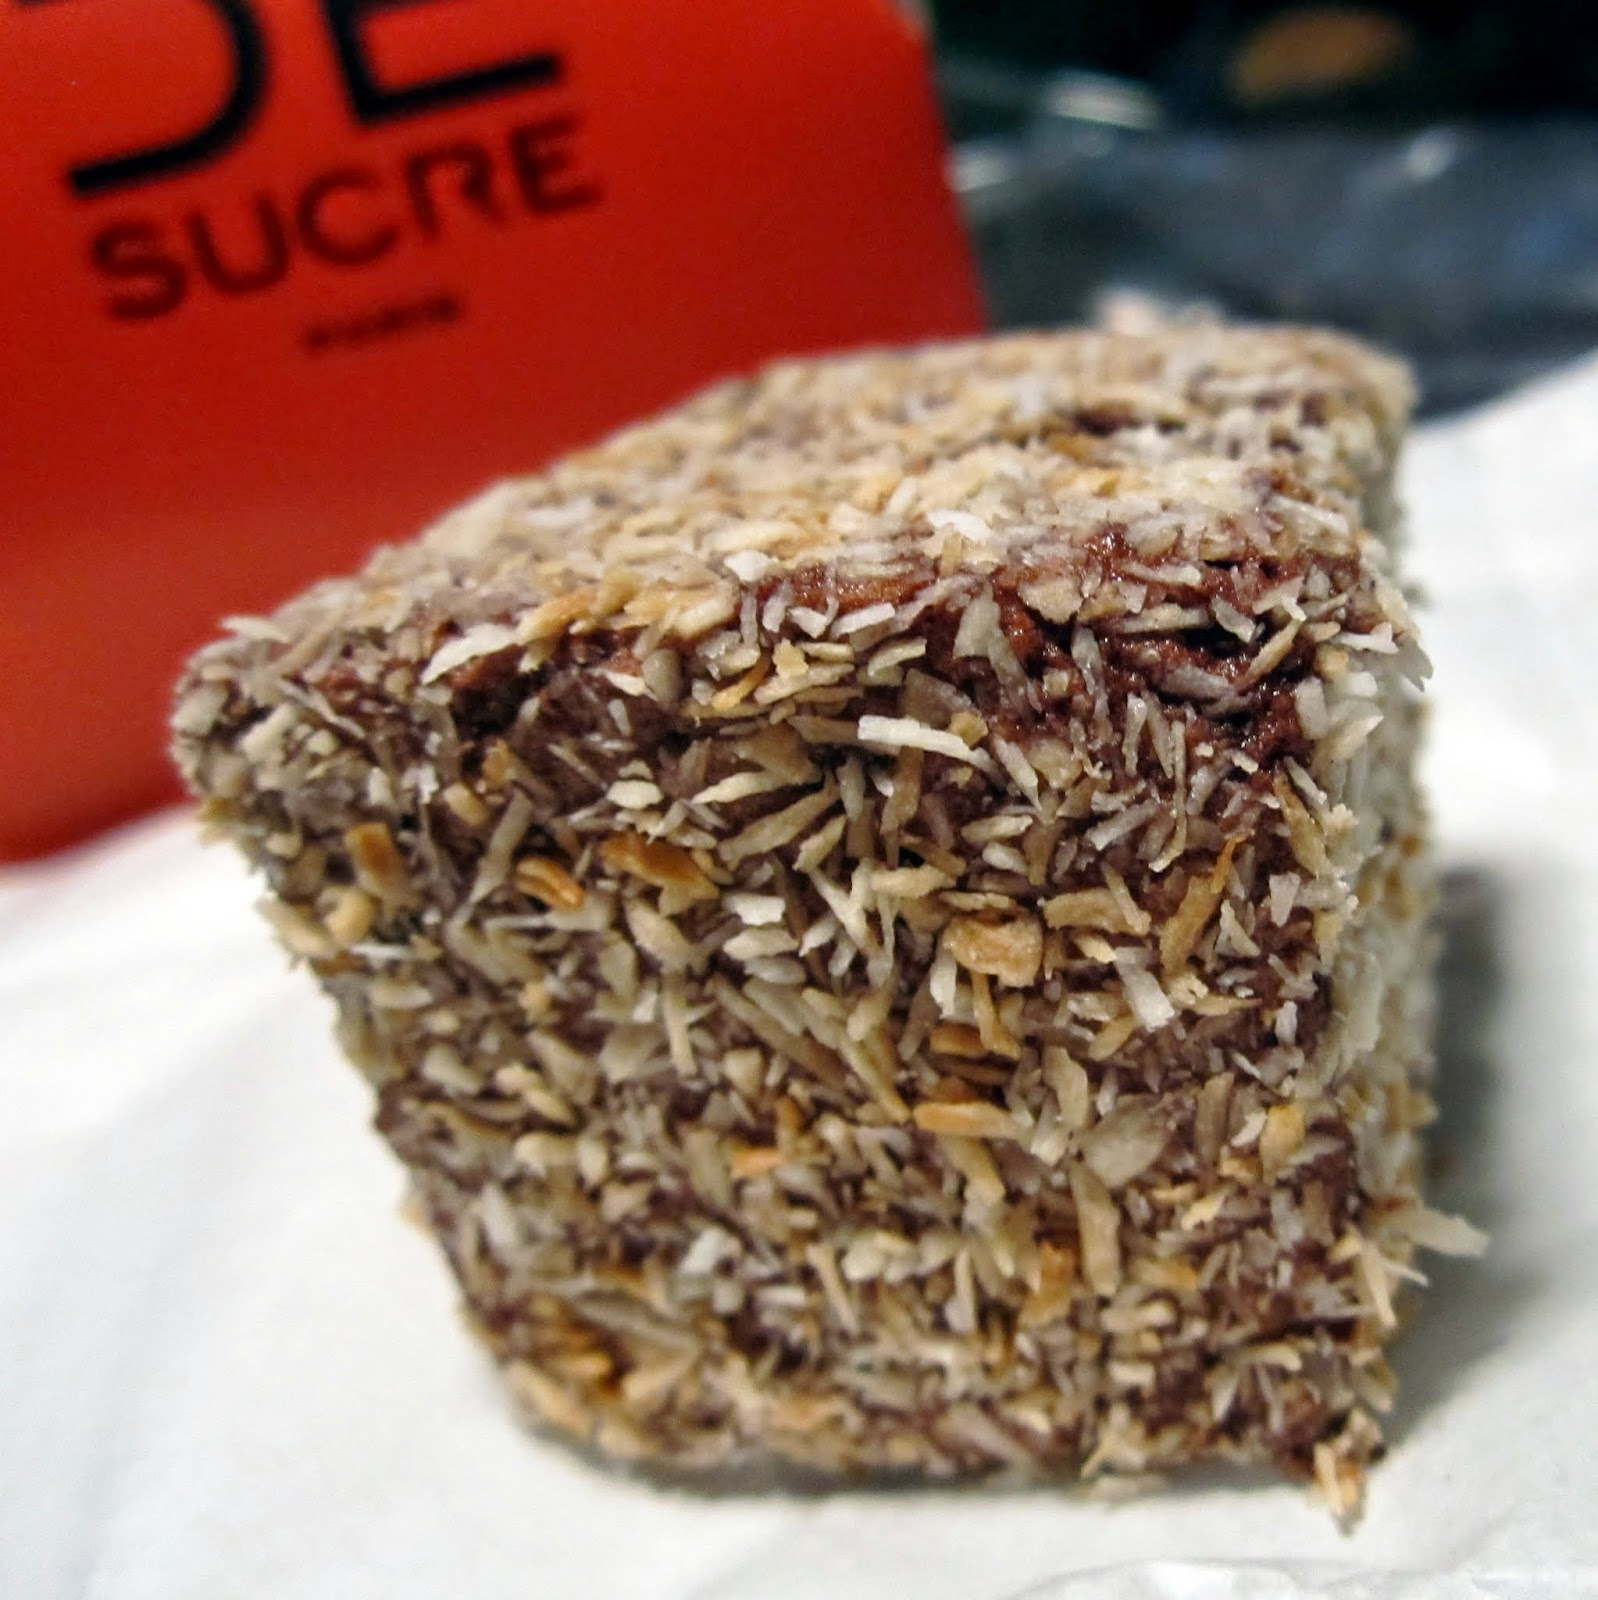 Handmade marshmallow Coconut Chocolate Pain de Sucre Paris